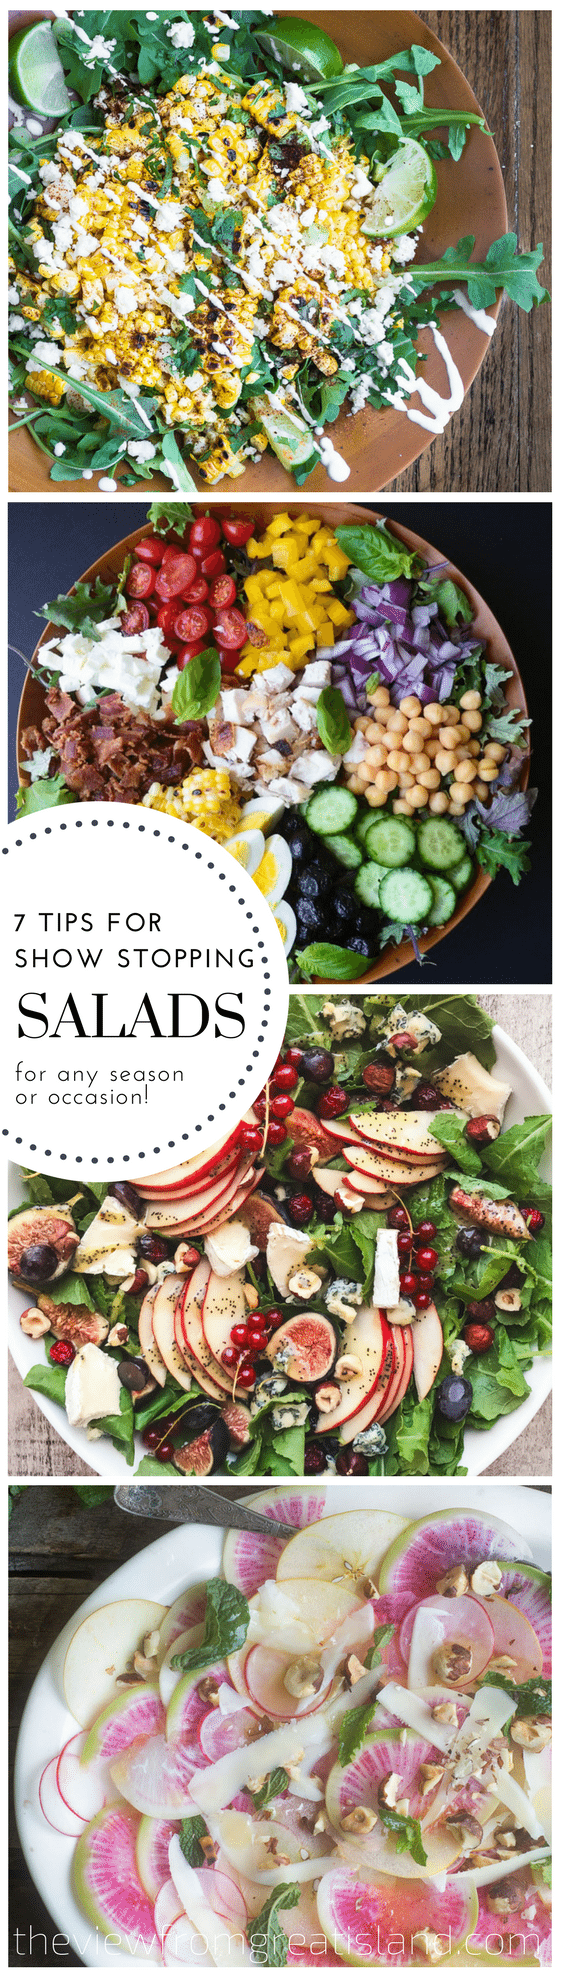 Take your salad from so-so to stunning with these 7 tips --- and when something looks this fabulous and fresh it's a pleasure to serve, and even more fun to eat. #salad #sidedish #composedsalad #arugula #choppedsalad #beansalad #caesarsalad #beansalad #healthy #glutenfree #memorialday #summer #4thofjuly #barbecue